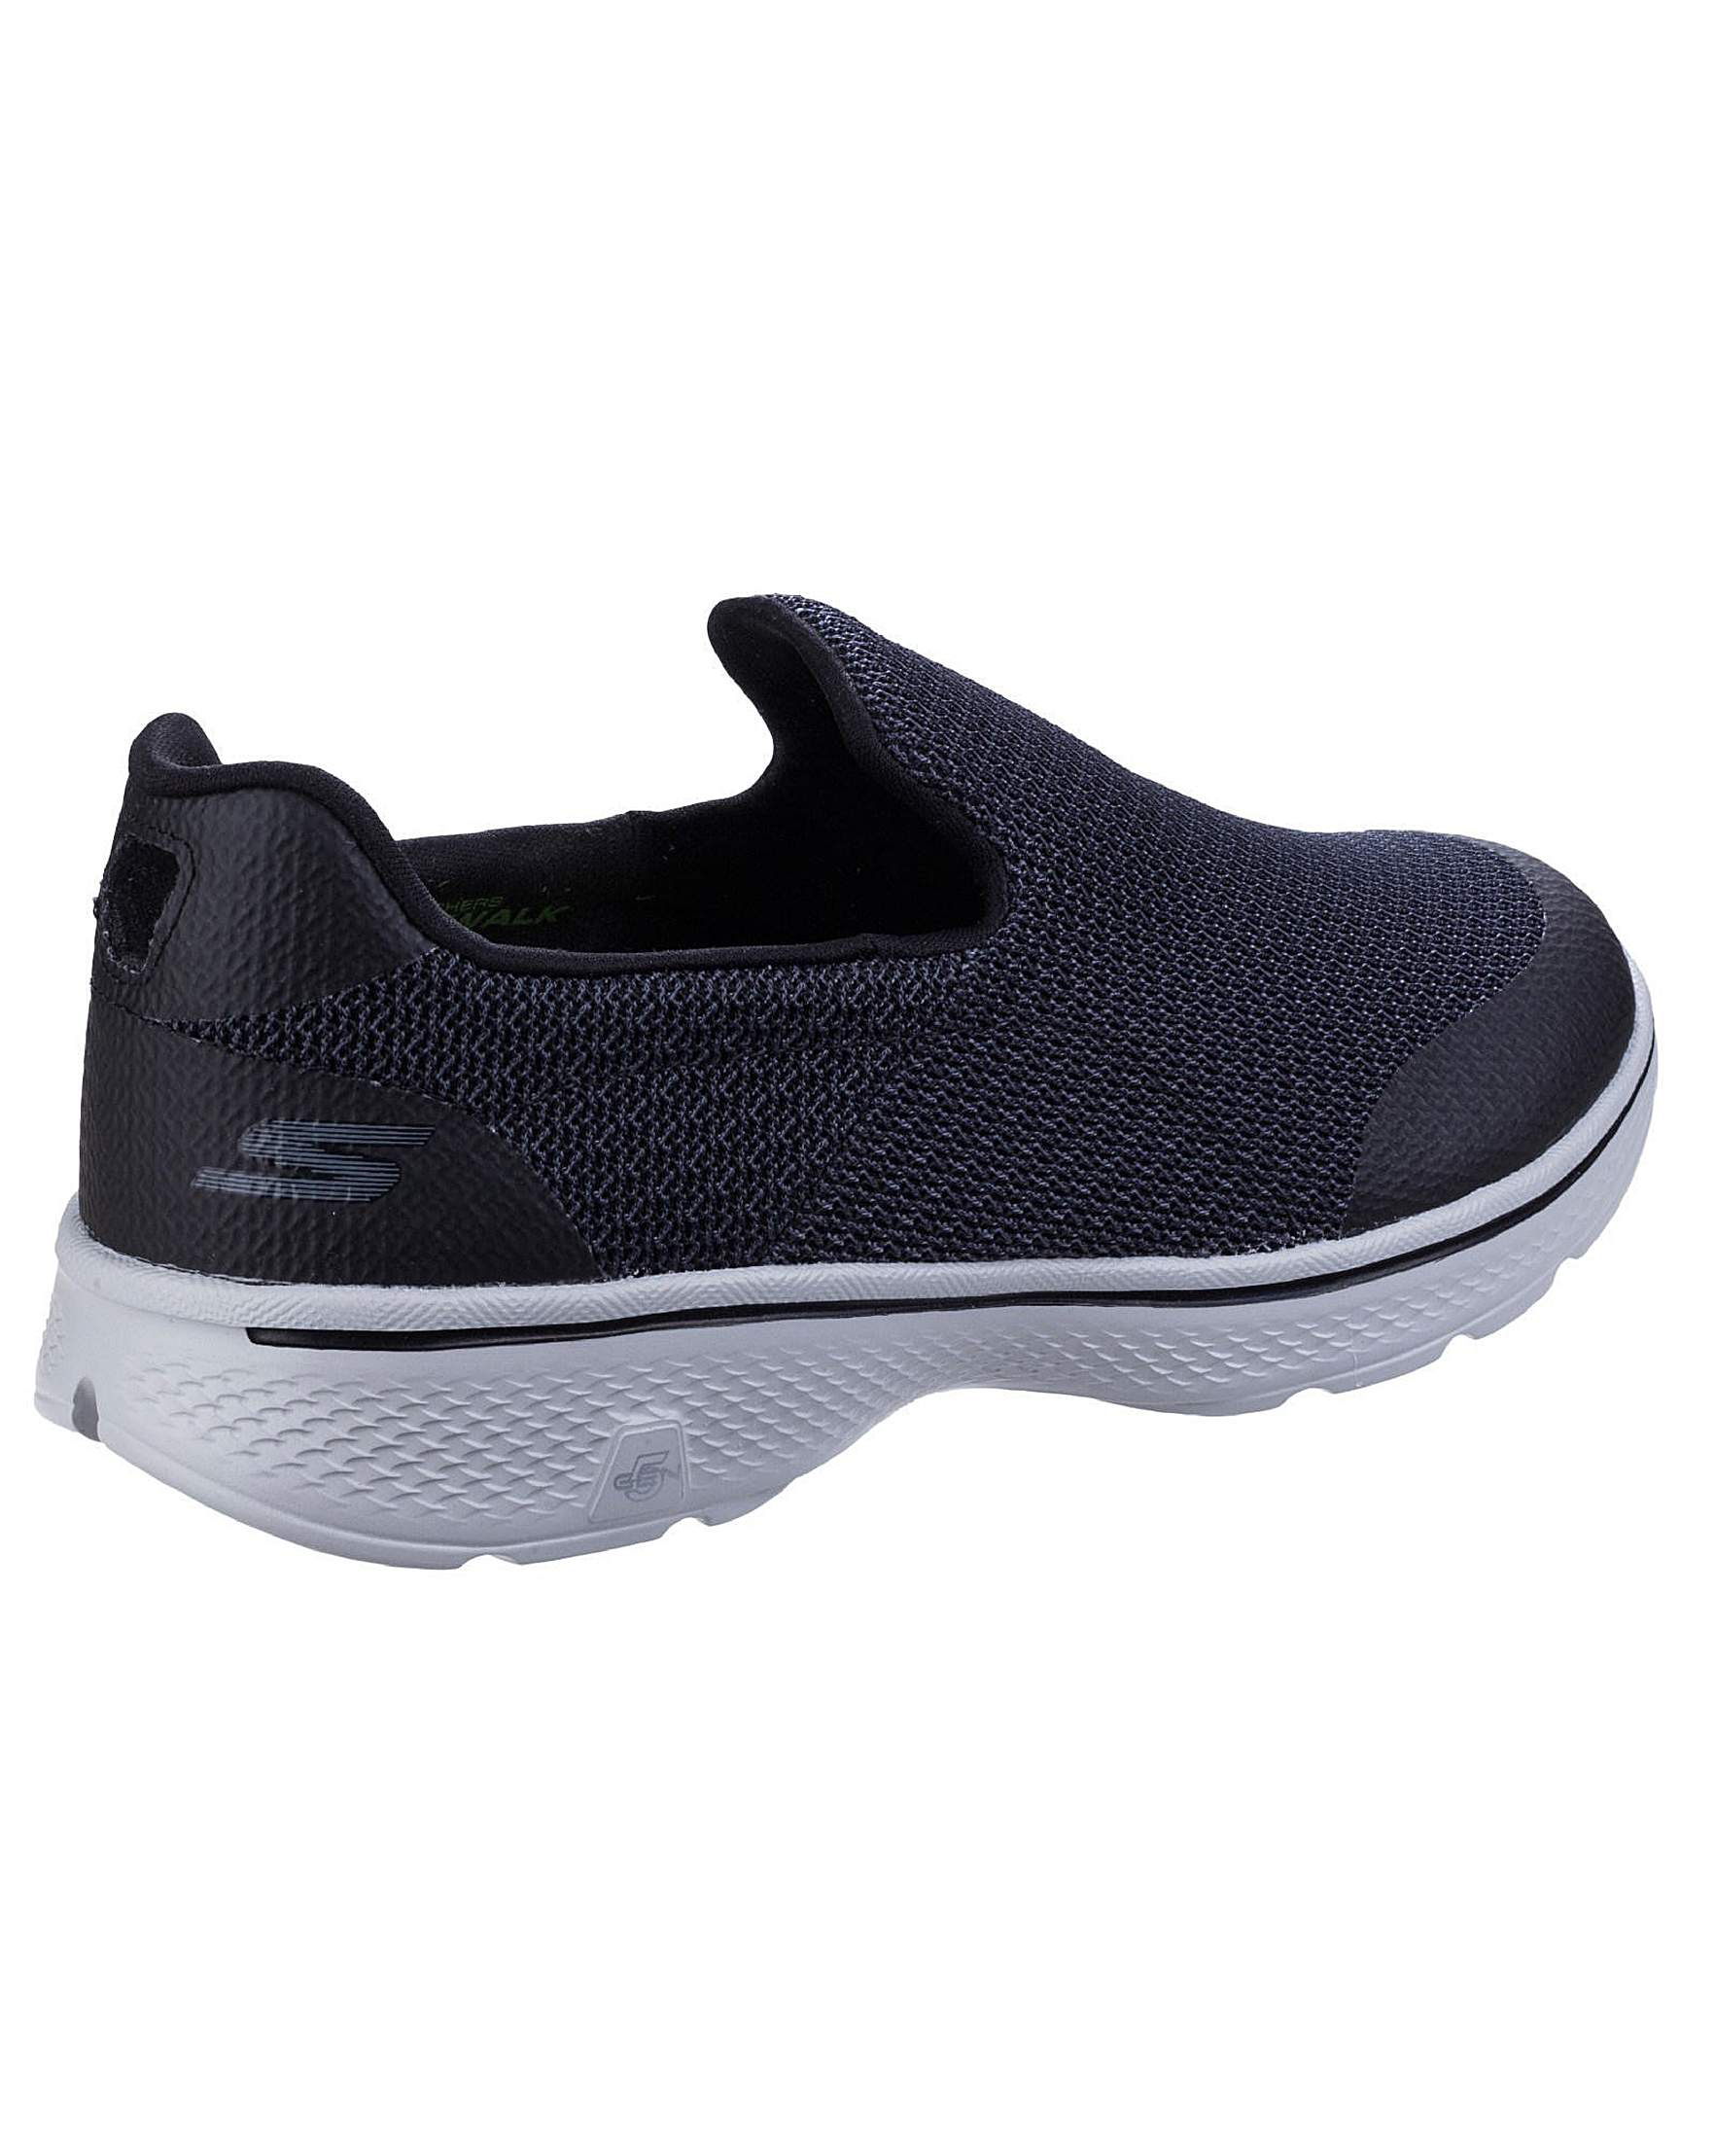 Skechers Go Walk 4 Expert Slip On  b438fcbbb4b